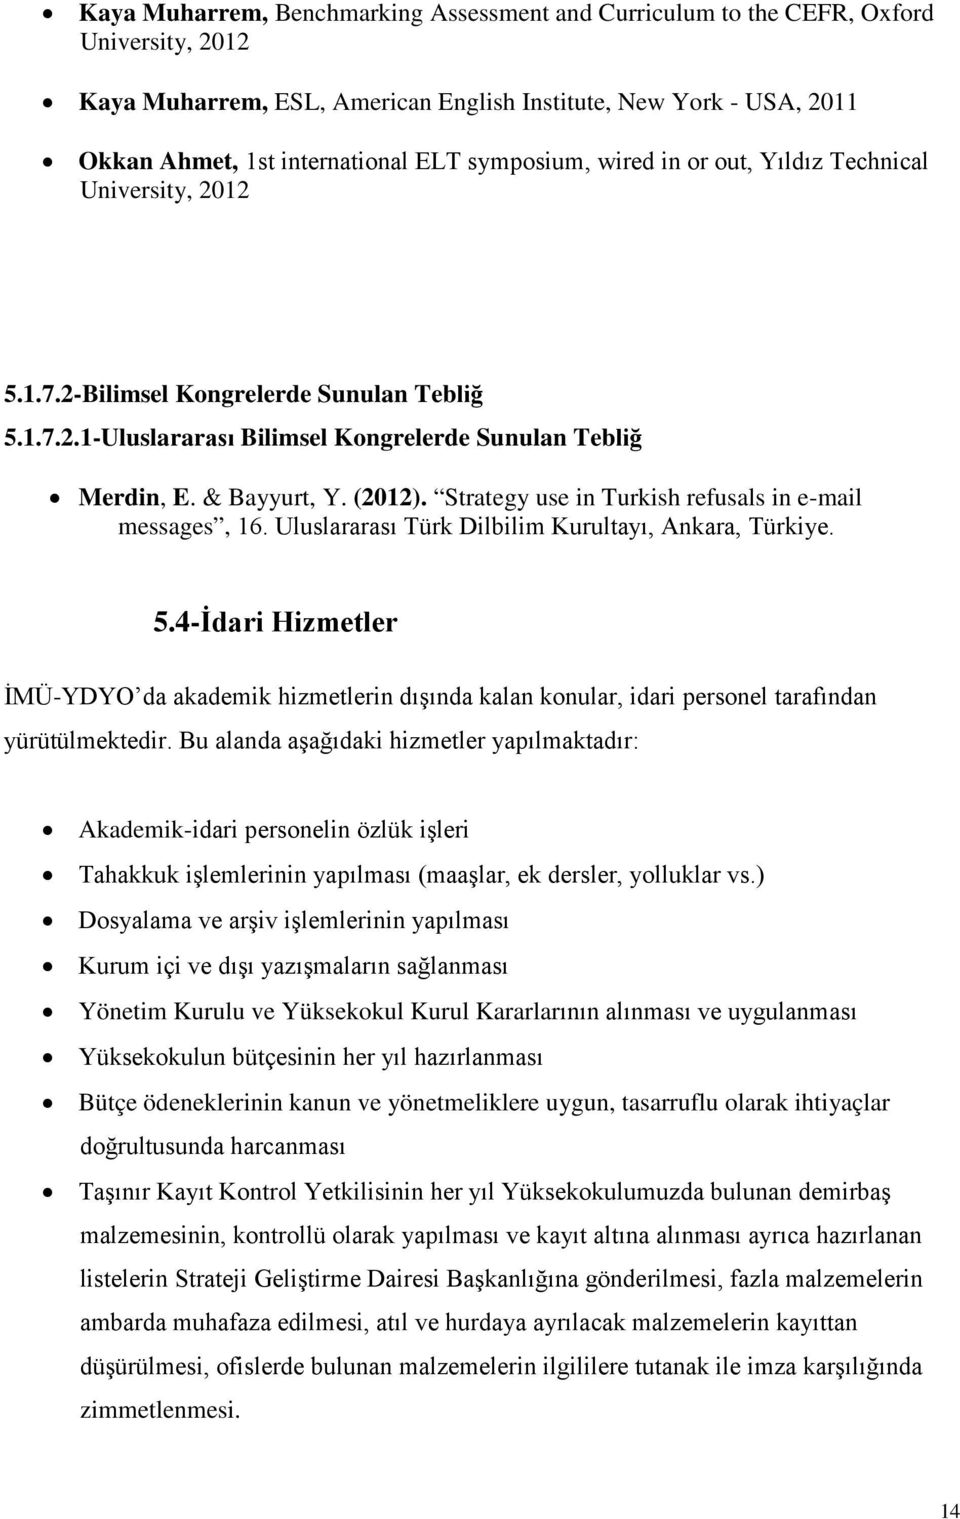 Strategy use in Turkish refusals in e-mail messages, 16. Uluslararası Türk Dilbilim Kurultayı, Ankara, Türkiye. 5.